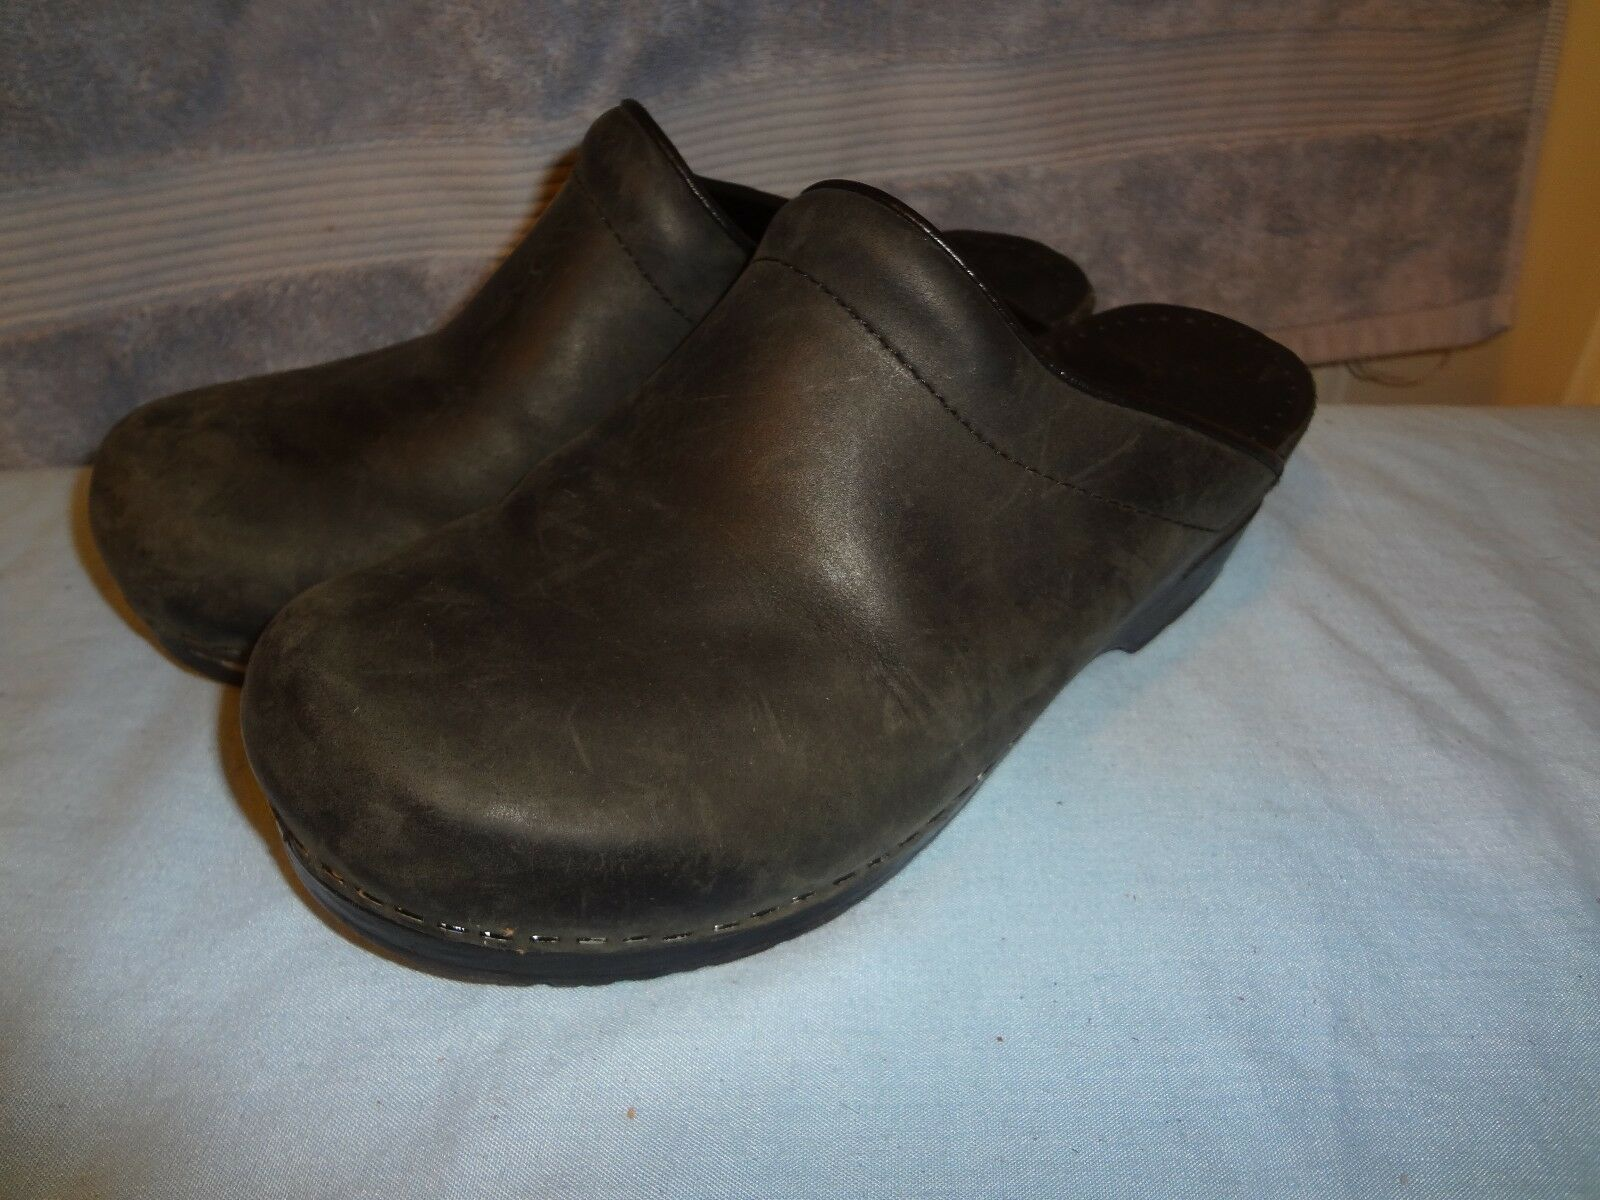 SANITA SLIP ON SIZE 38 US 7.5 BLACK #20